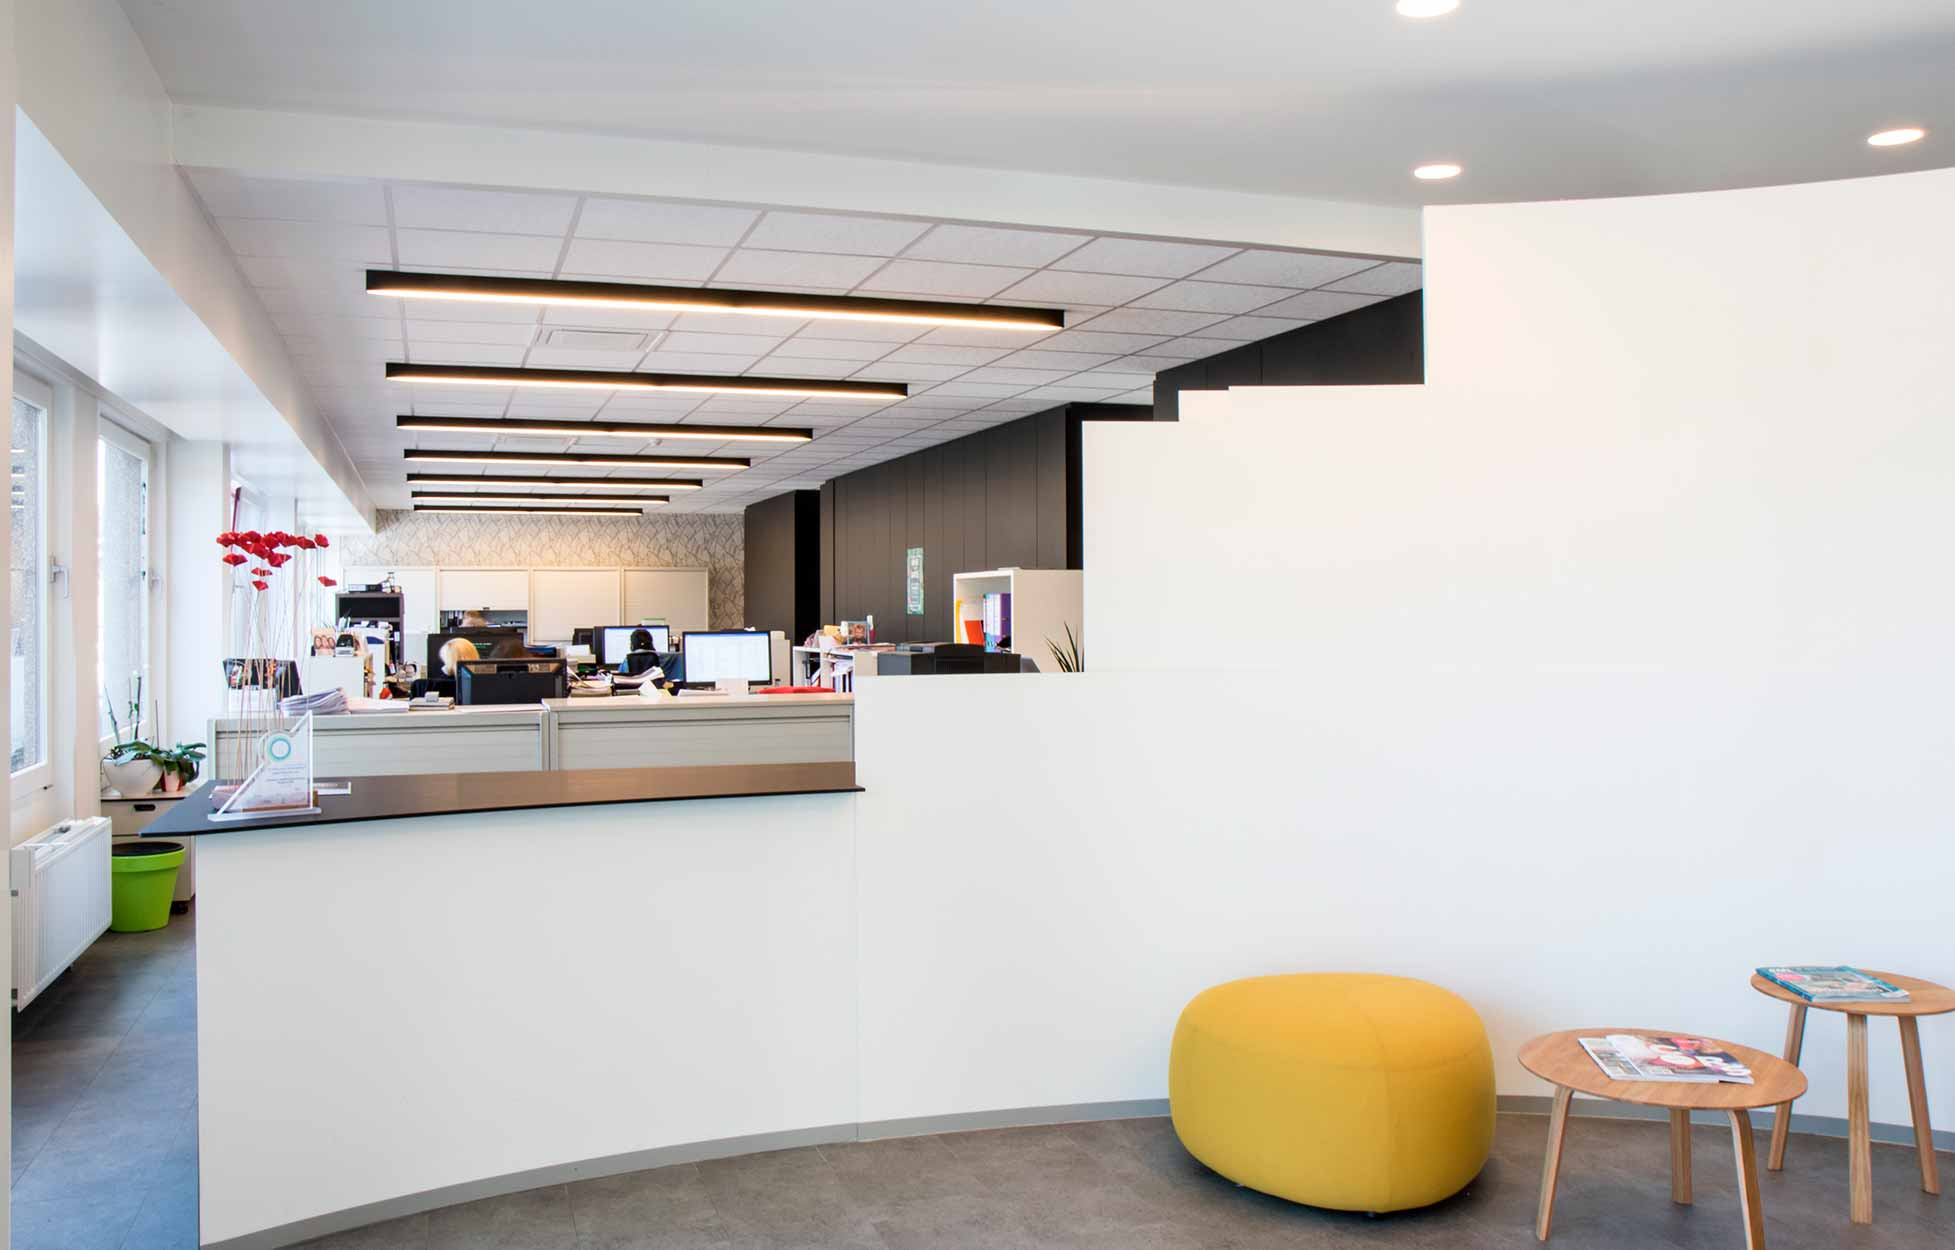 5 tips for lighting offices.